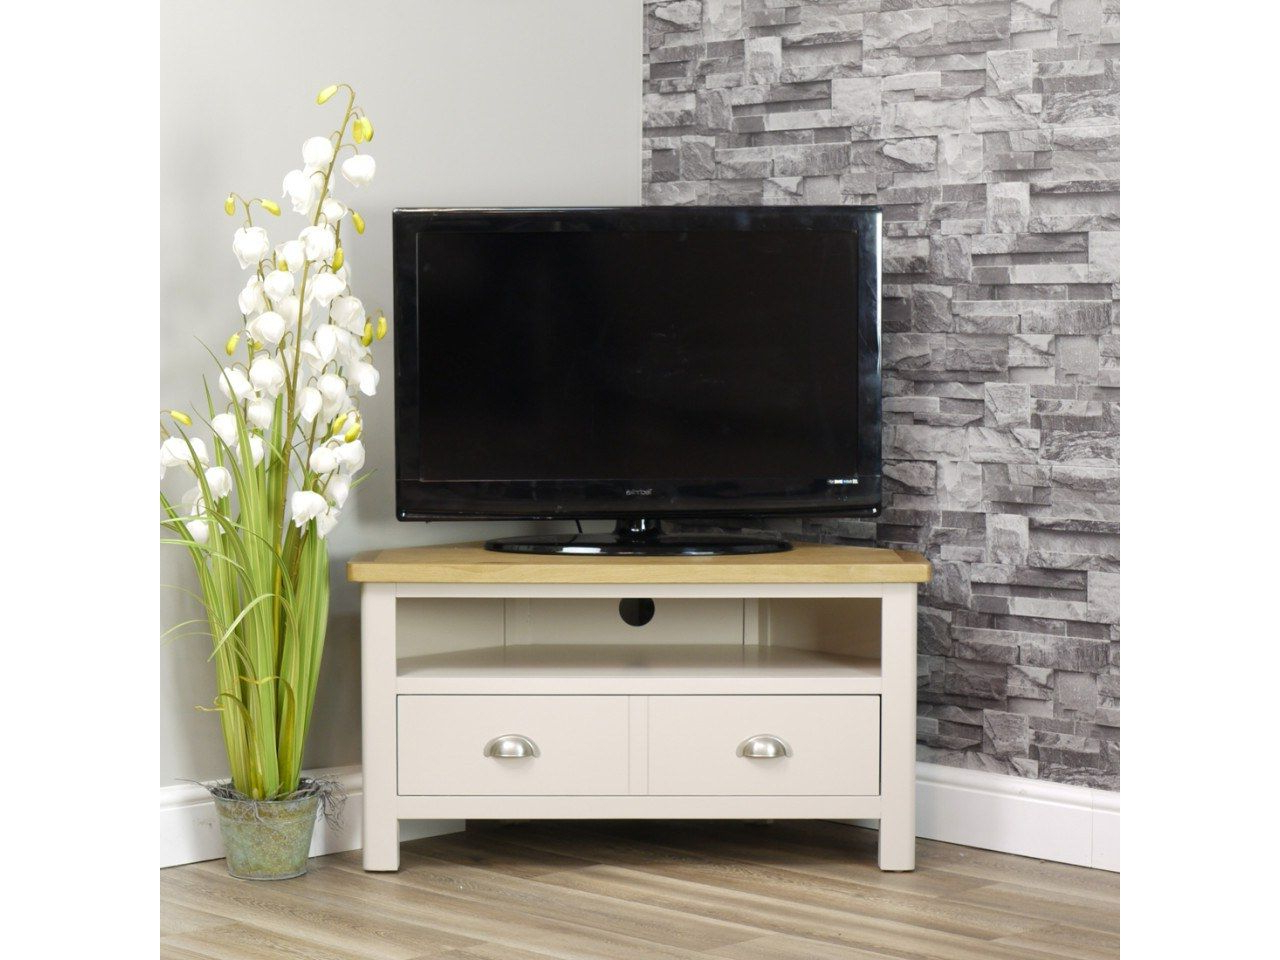 Dorset Oak 90cm Corner Tv Unit For Screens Up To 42 Intended For Penelope Dove Grey Tv Stands (View 3 of 20)